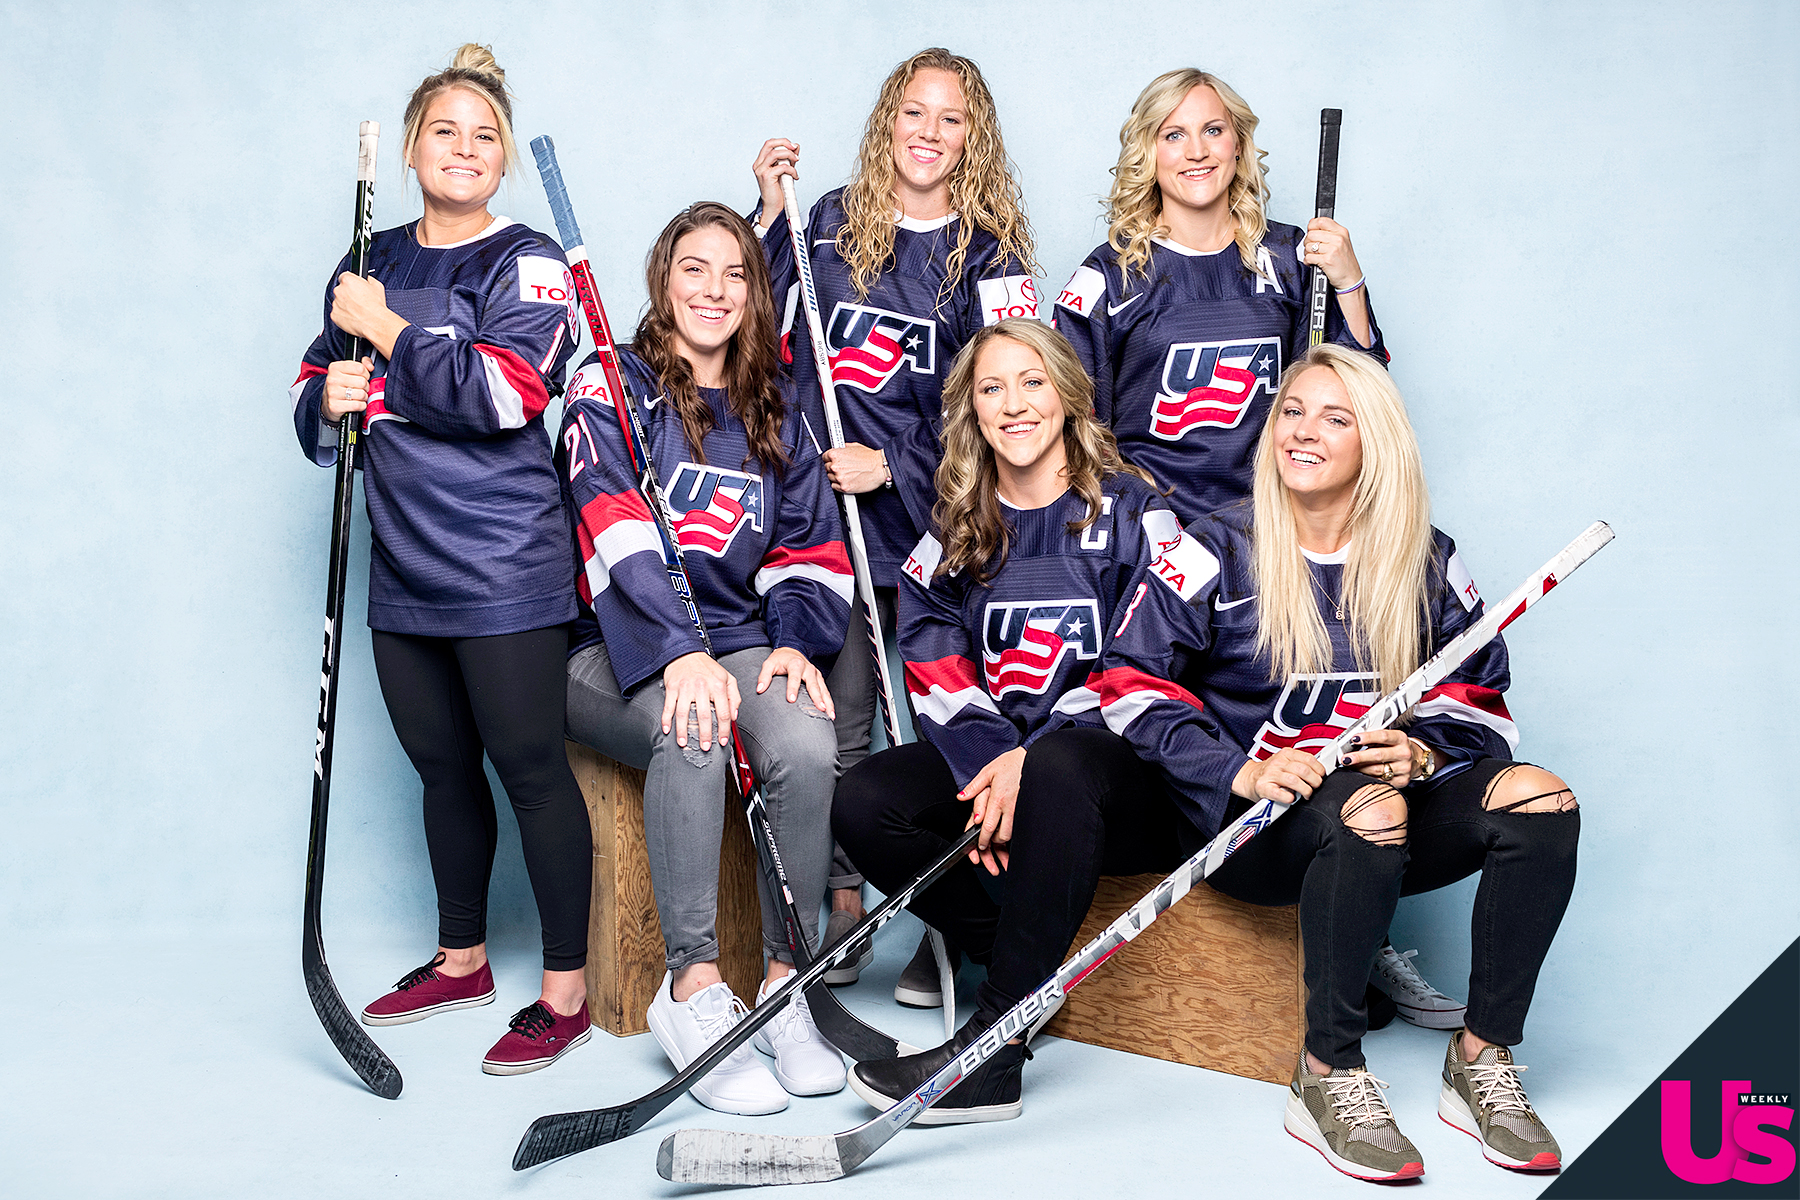 American curling team is going for the gold